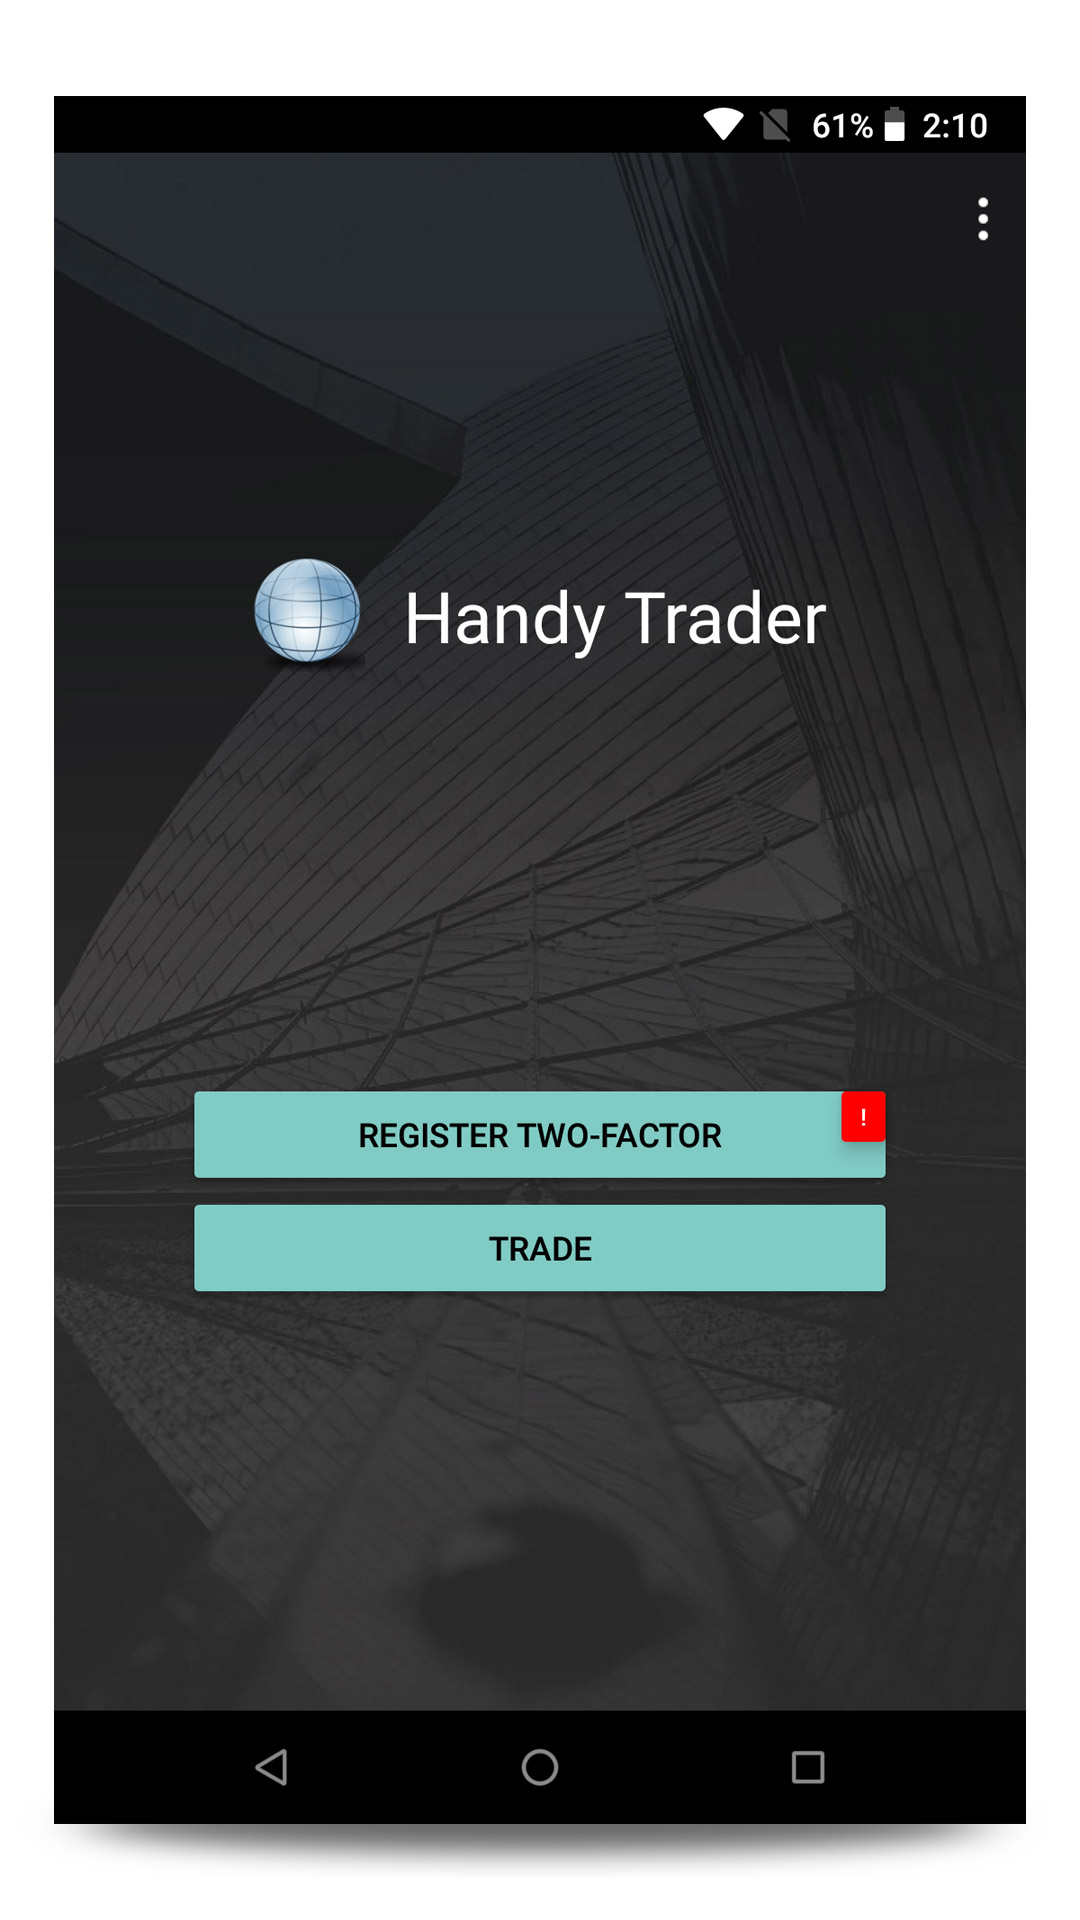 Handy Trader And Handydsa For Android